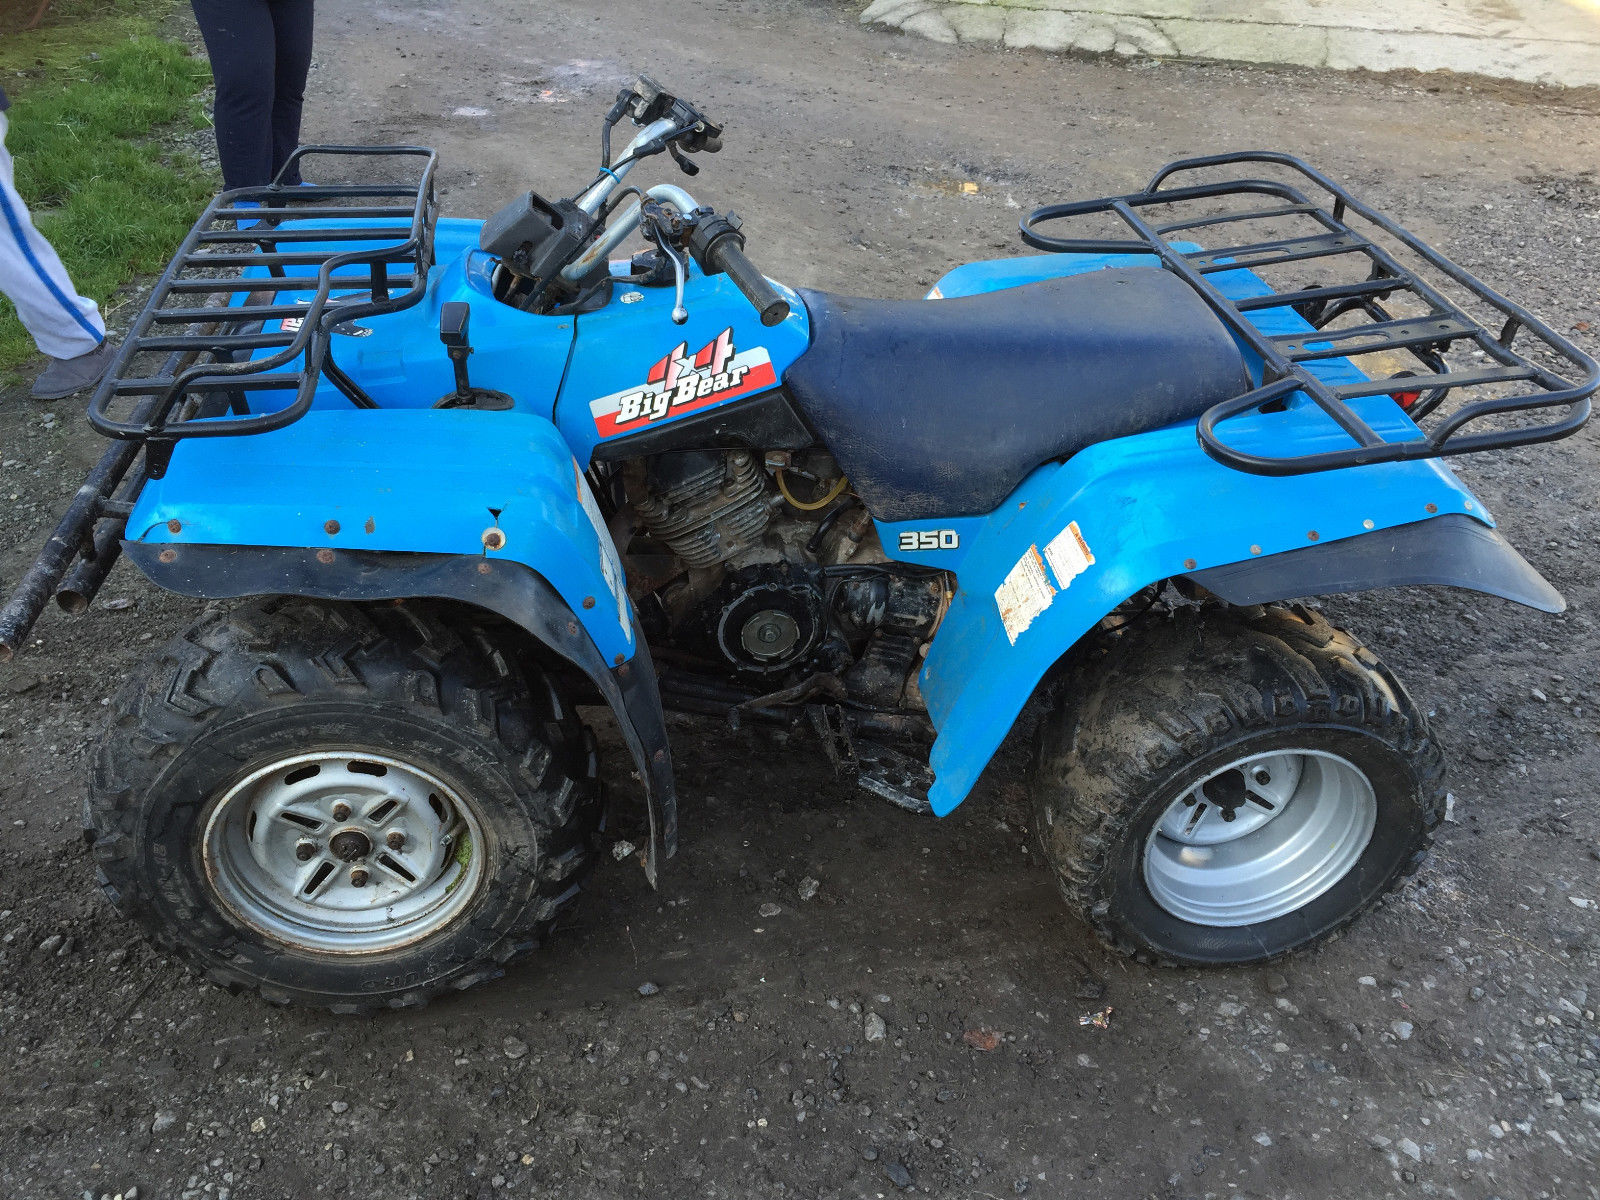 yamaha big bear 350 4x4 spares or repair quad bike